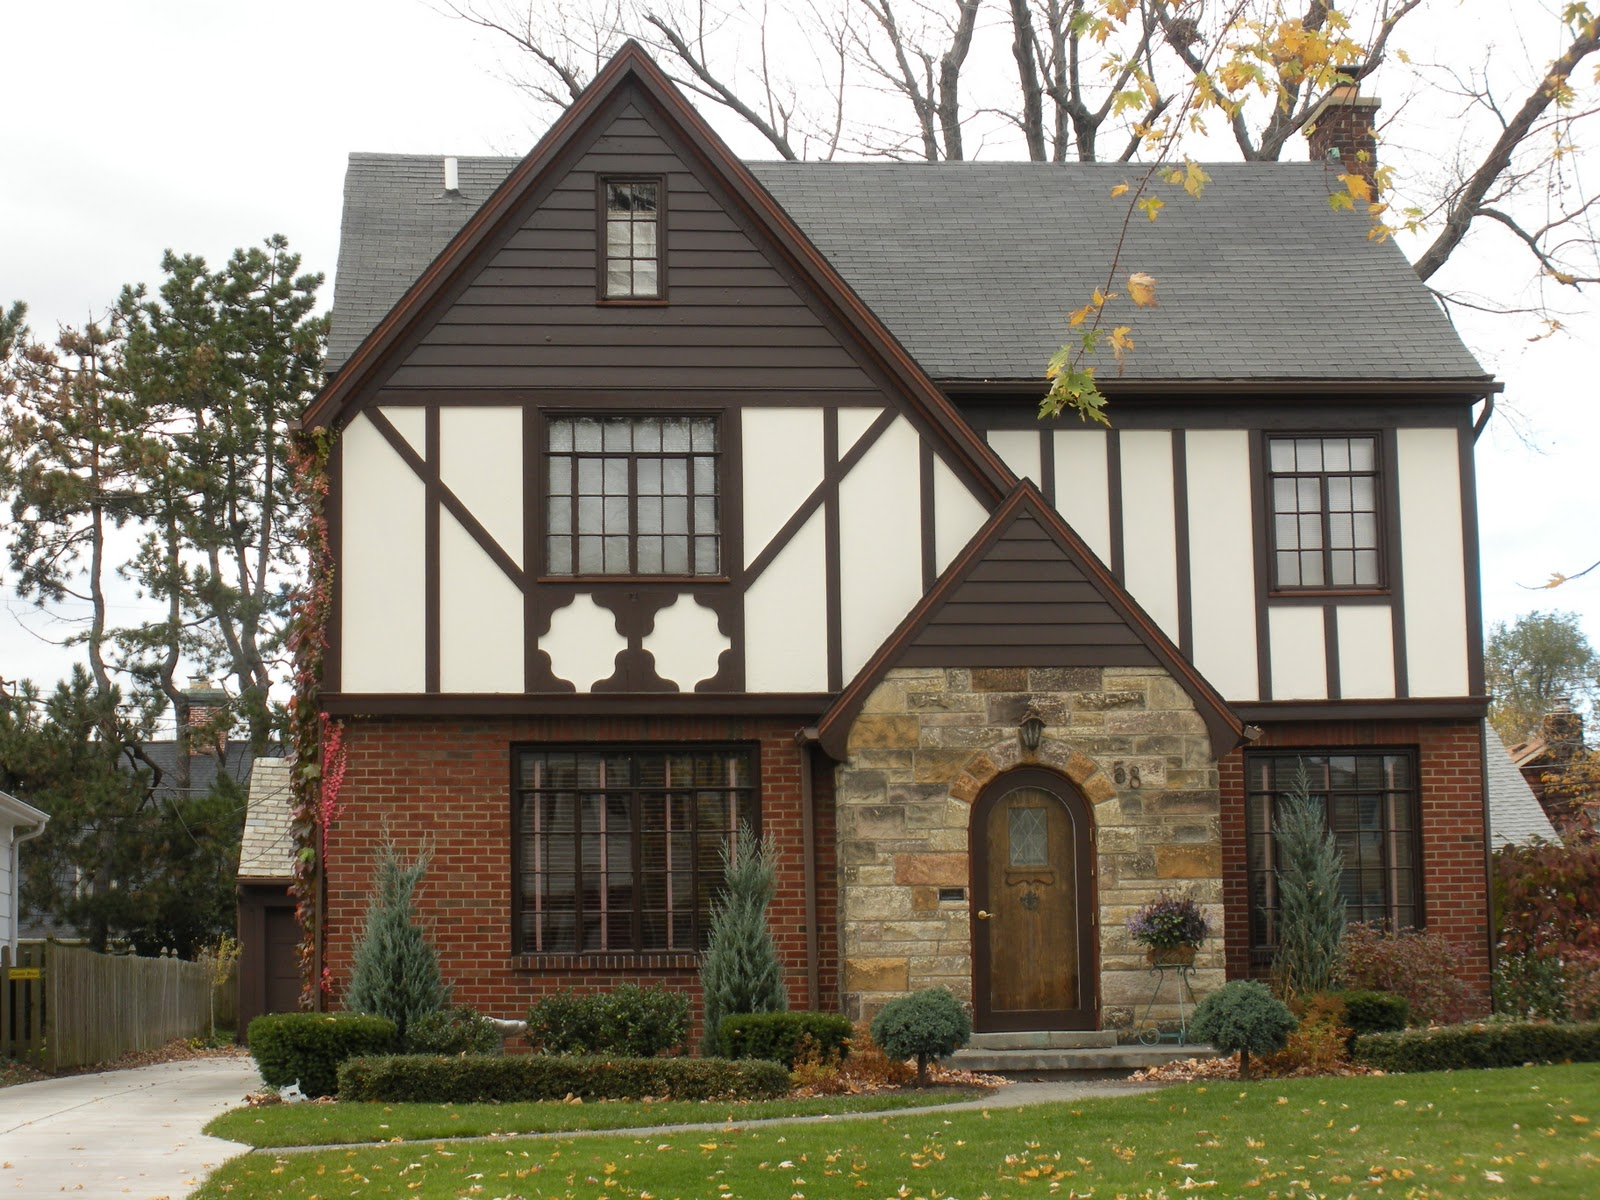 Top 15 house designs and architectural styles to ignite for Tudor revival house plans